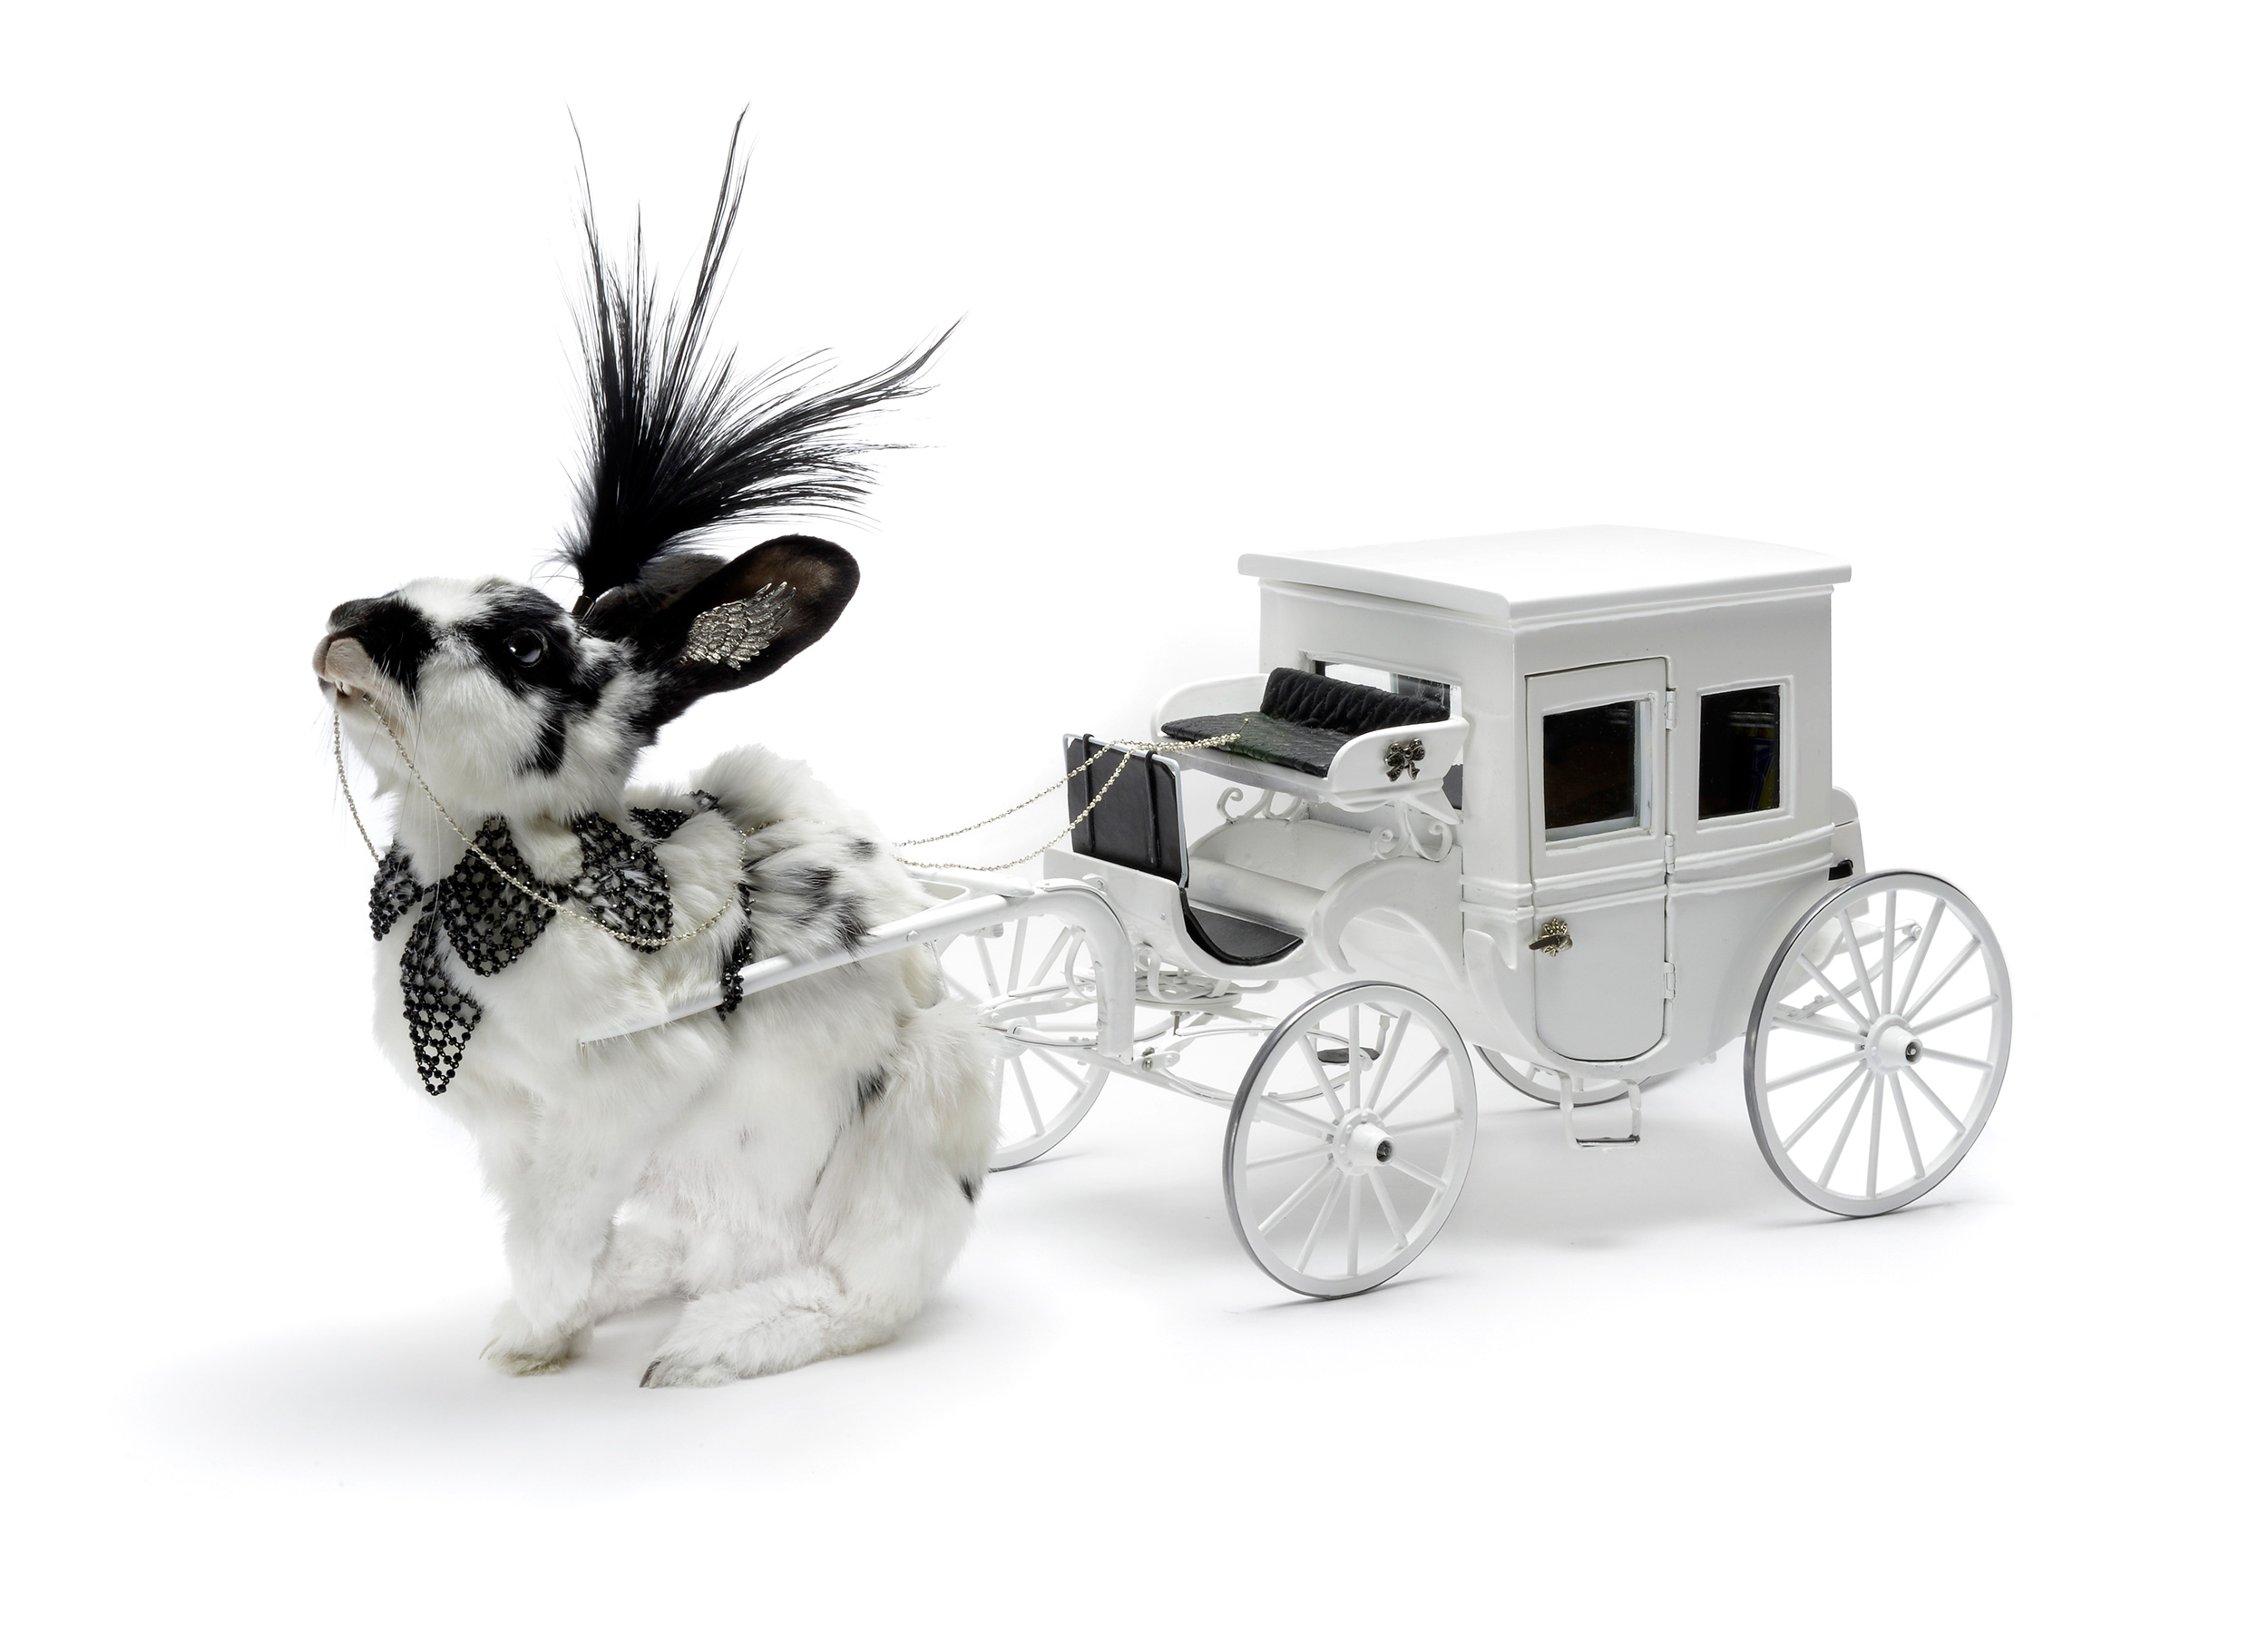 A taxidermied rabbit pulling a carriage